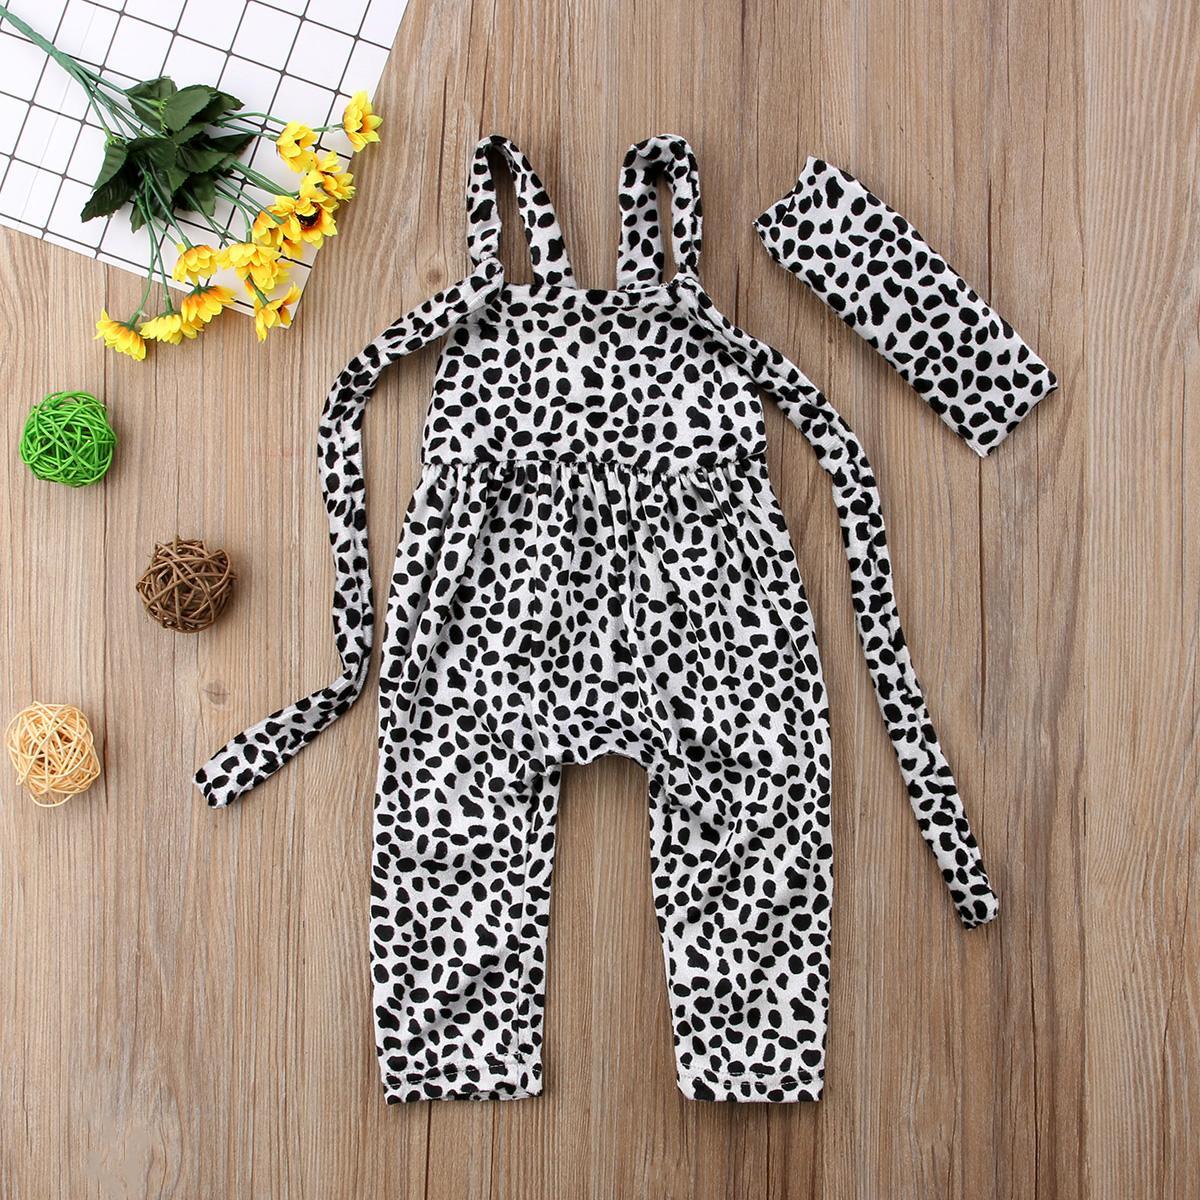 Newborn Kids Baby Boy Girl Polka Dot Print Romper Jumpsuit Outfit Sunsuit Baby Sleeveless Cow Rompers Clothing